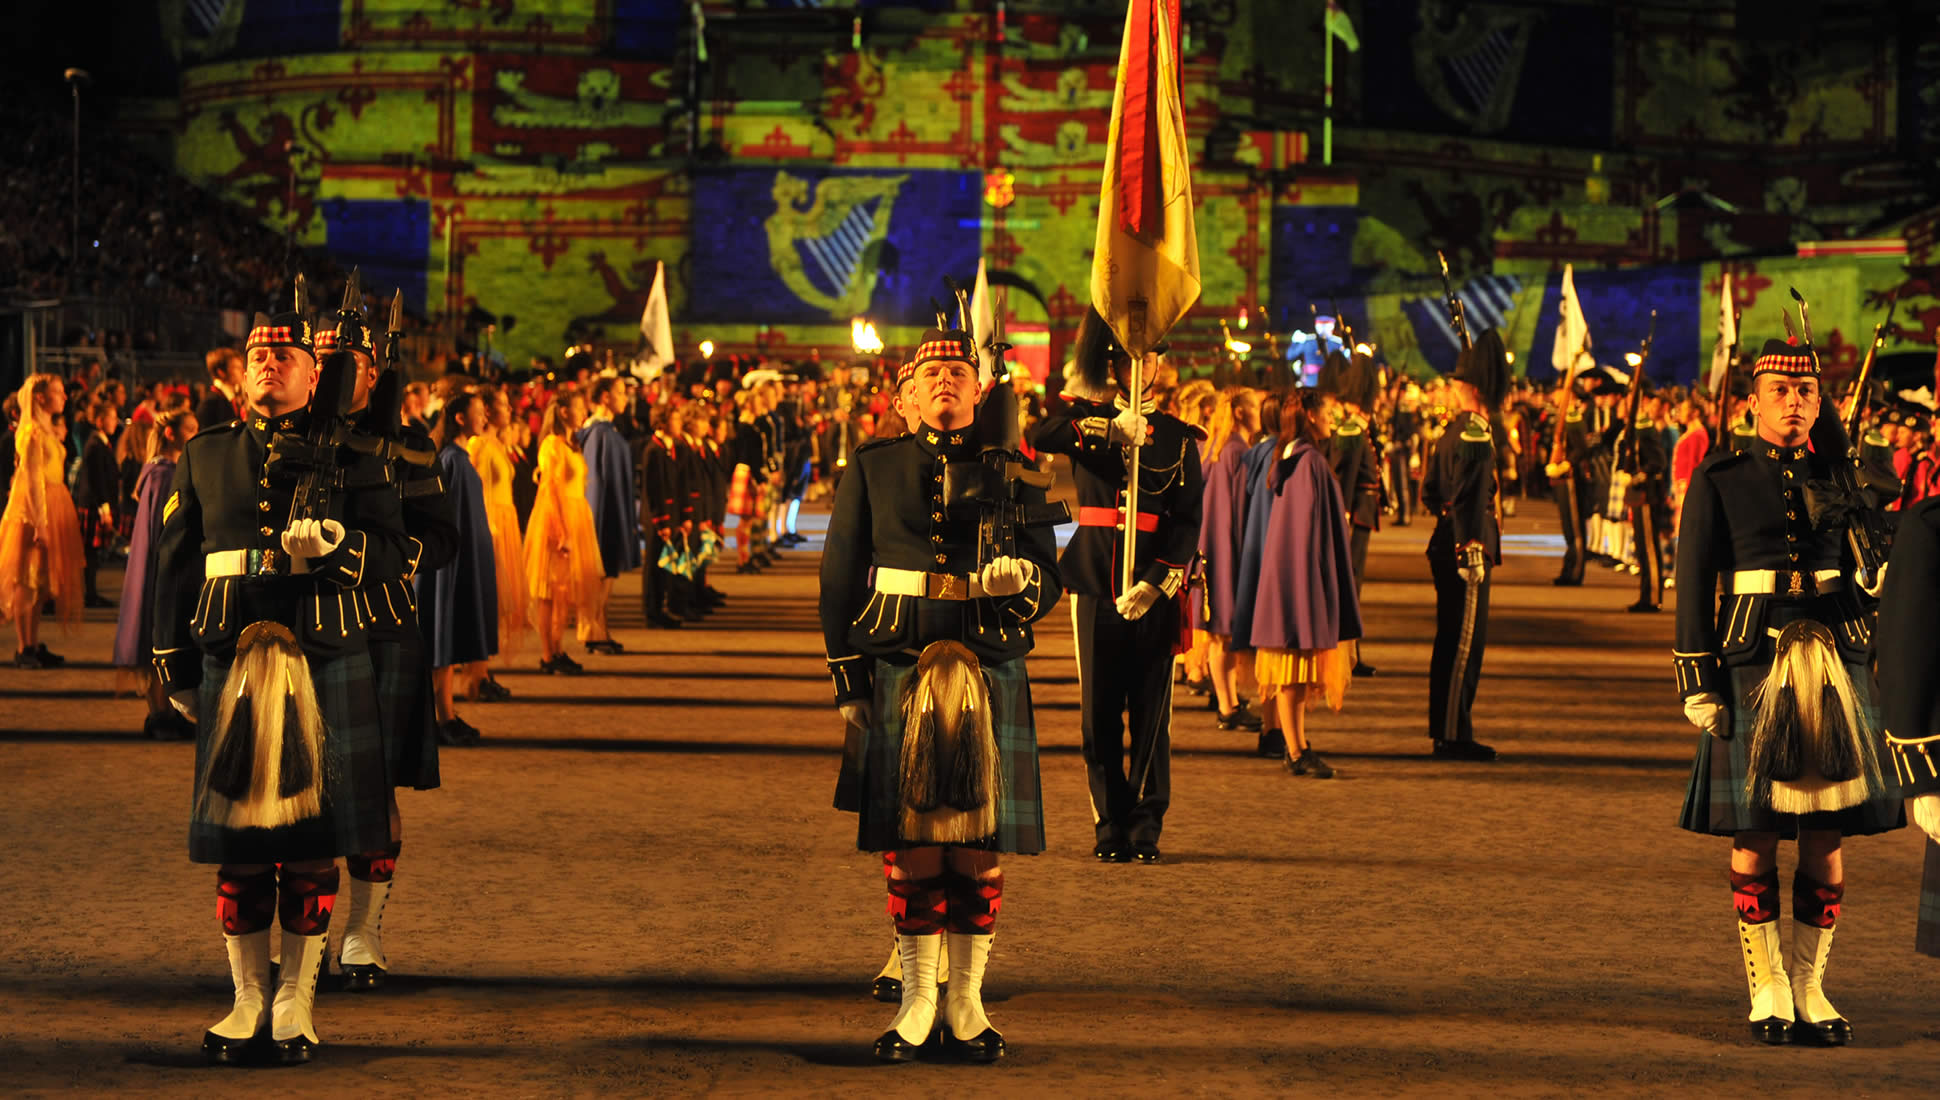 Royal edinburgh military tattoo 25 28 agosto fini viaggi for Royal military tattoo